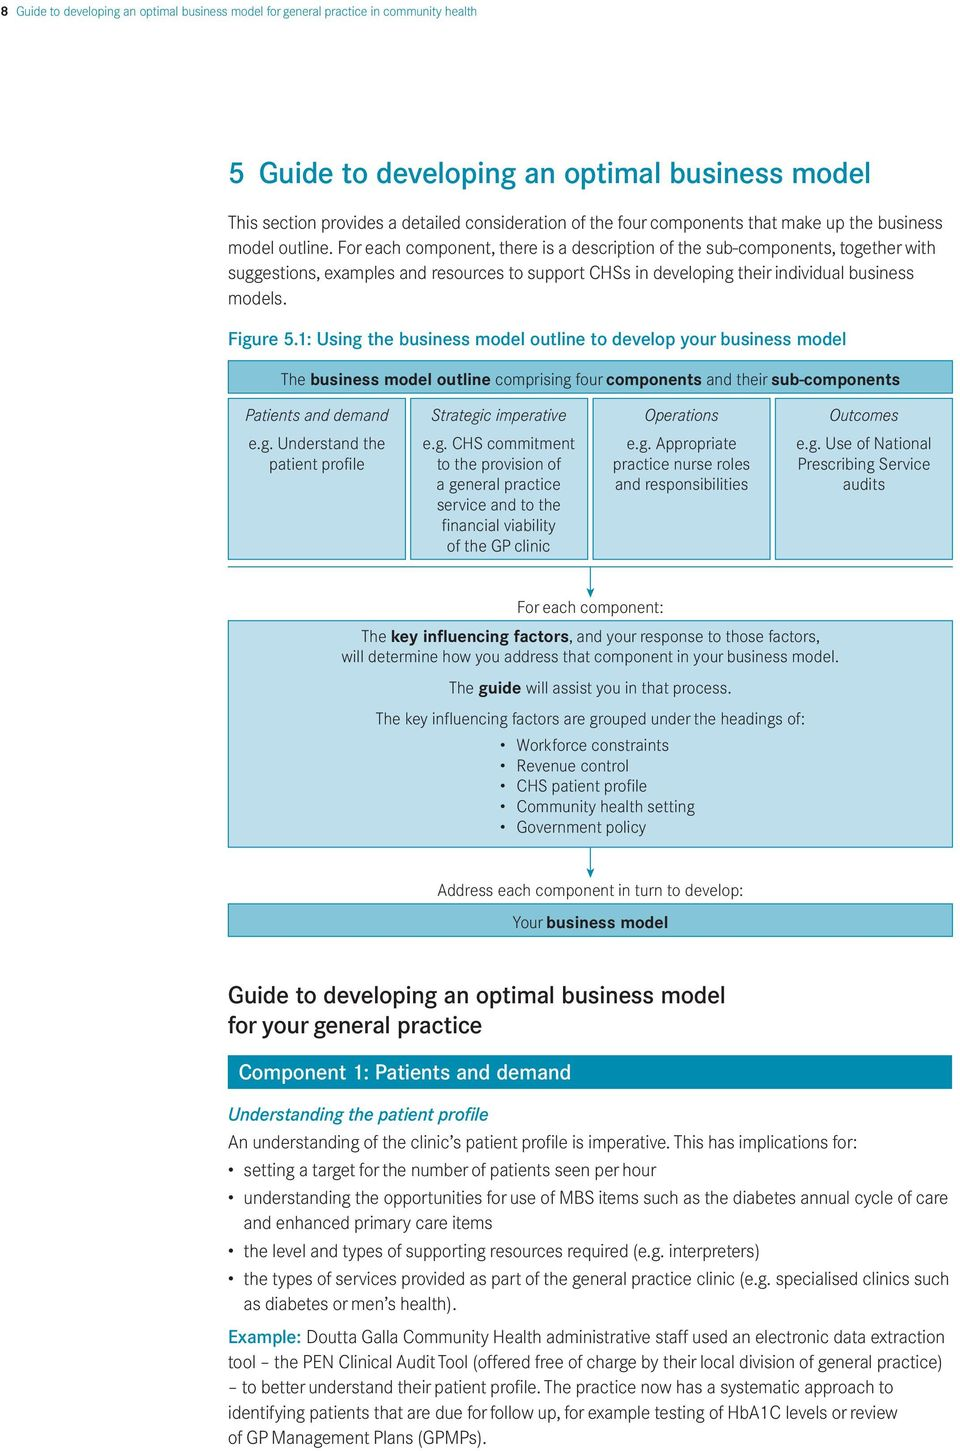 For each component, there is a description of the sub-components, together with suggestions, examples and resources to support CHSs in developing their individual business models. Figure 5.